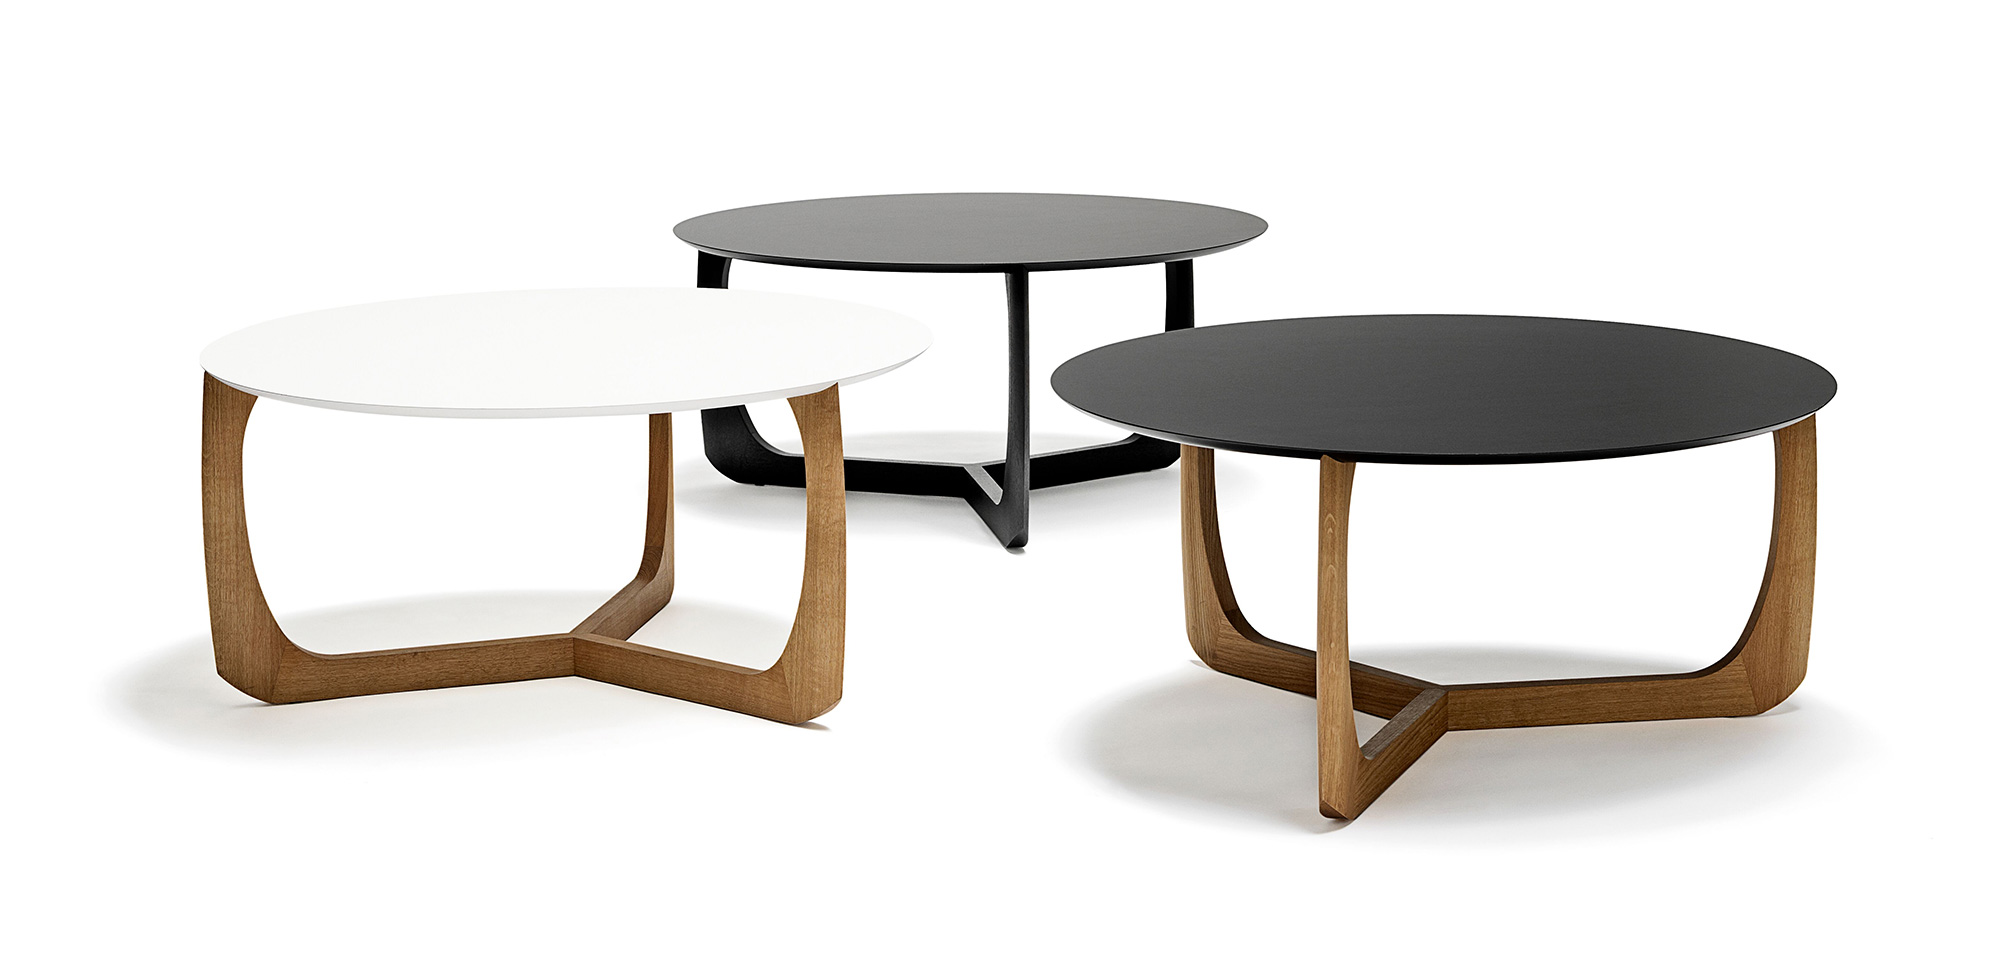 Table basse ronde ovale pas cher mobilier design for Table basse ronde pas cher